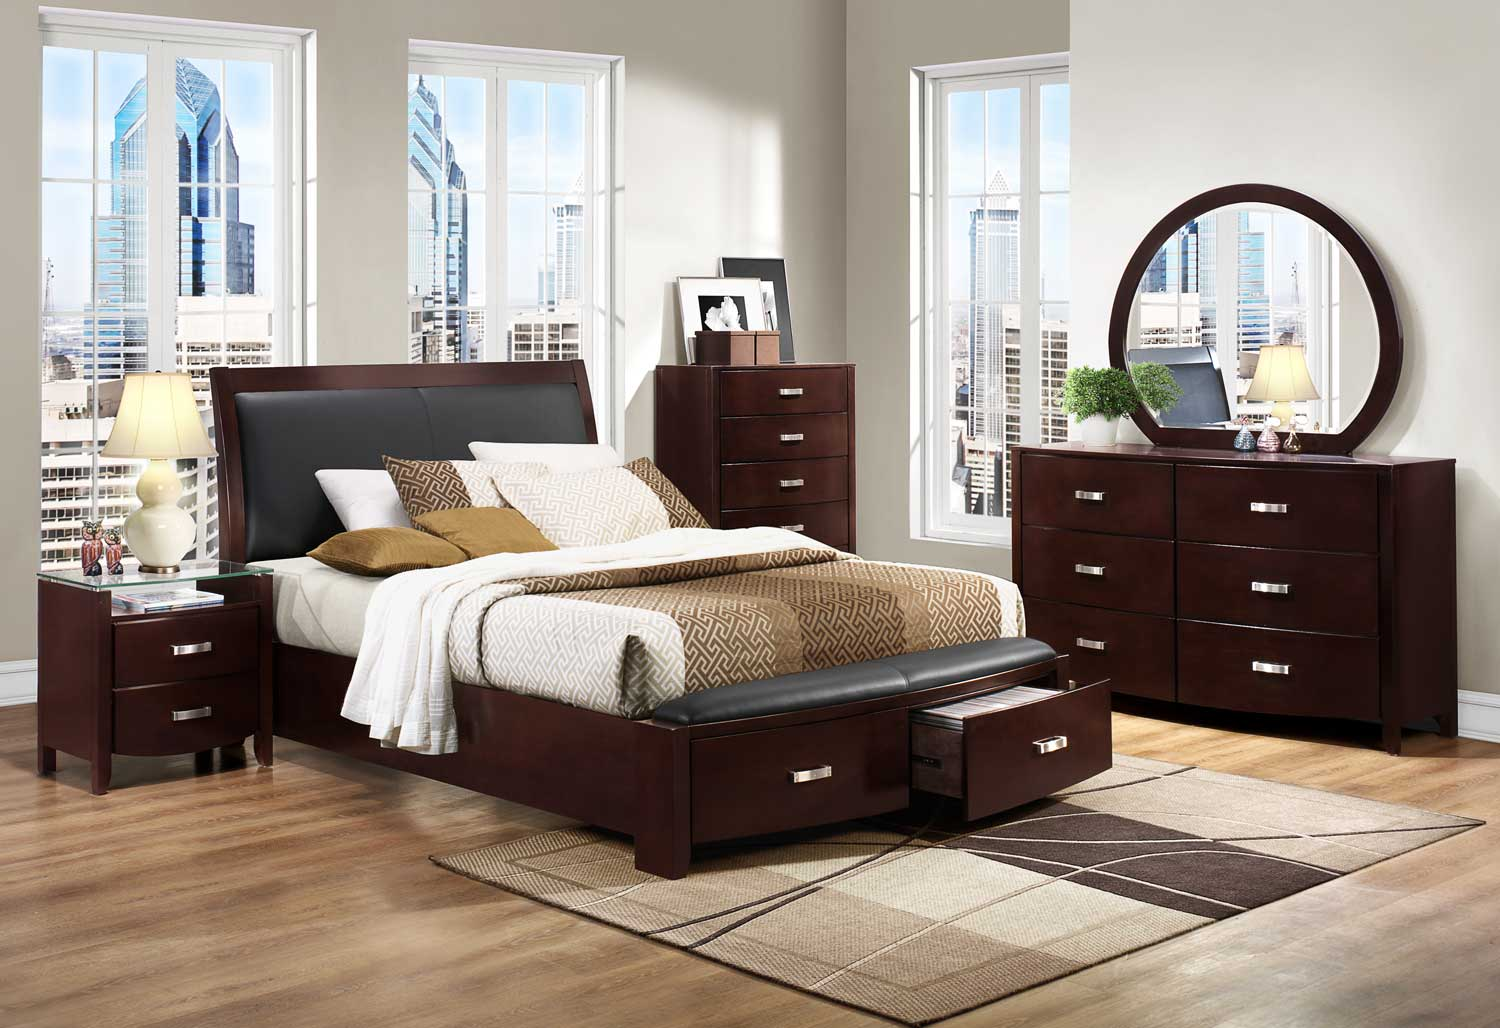 Homelegance lyric platform bedroom set dark espresso for Furniture bedroom furniture